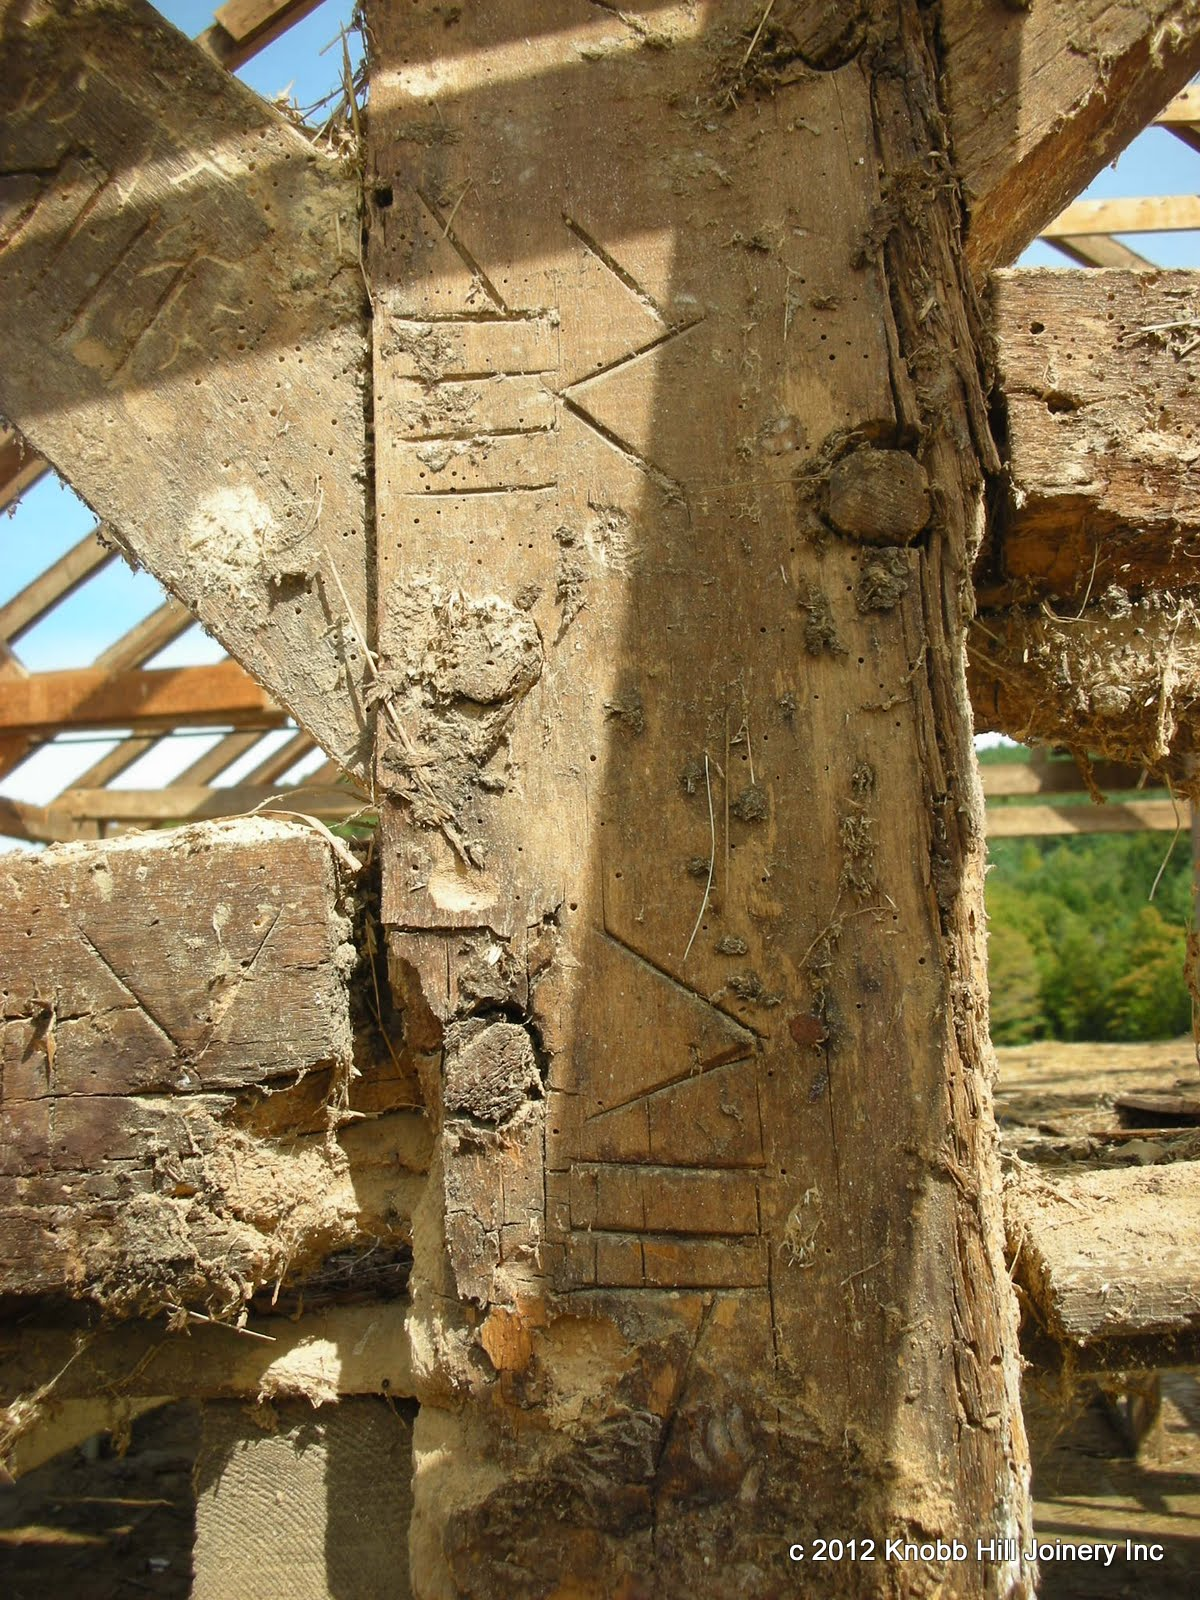 Gouge marks can be seen around the peg holes for setting a nose auger.  The marriage marks throughout the barn were very consistent with the exception of those on this post.  The numerals seen here are redundant to those of the adjacent reference posts.